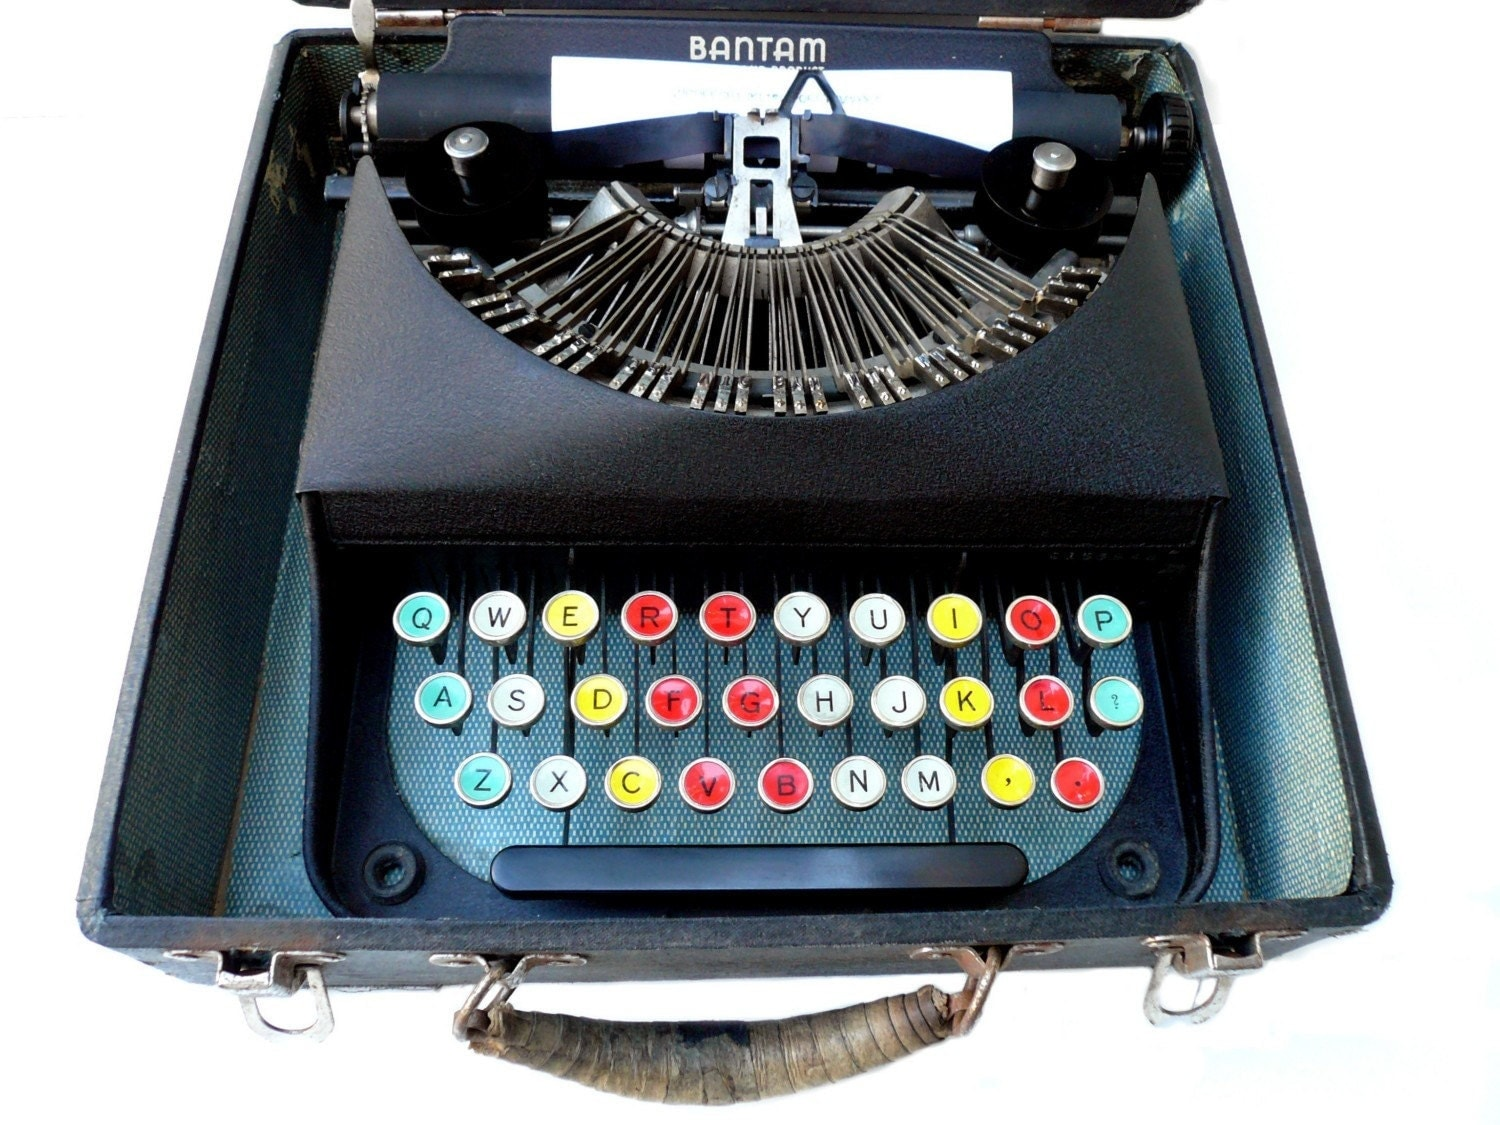 RESTORED Colored Key remington  Bantam Typewriter